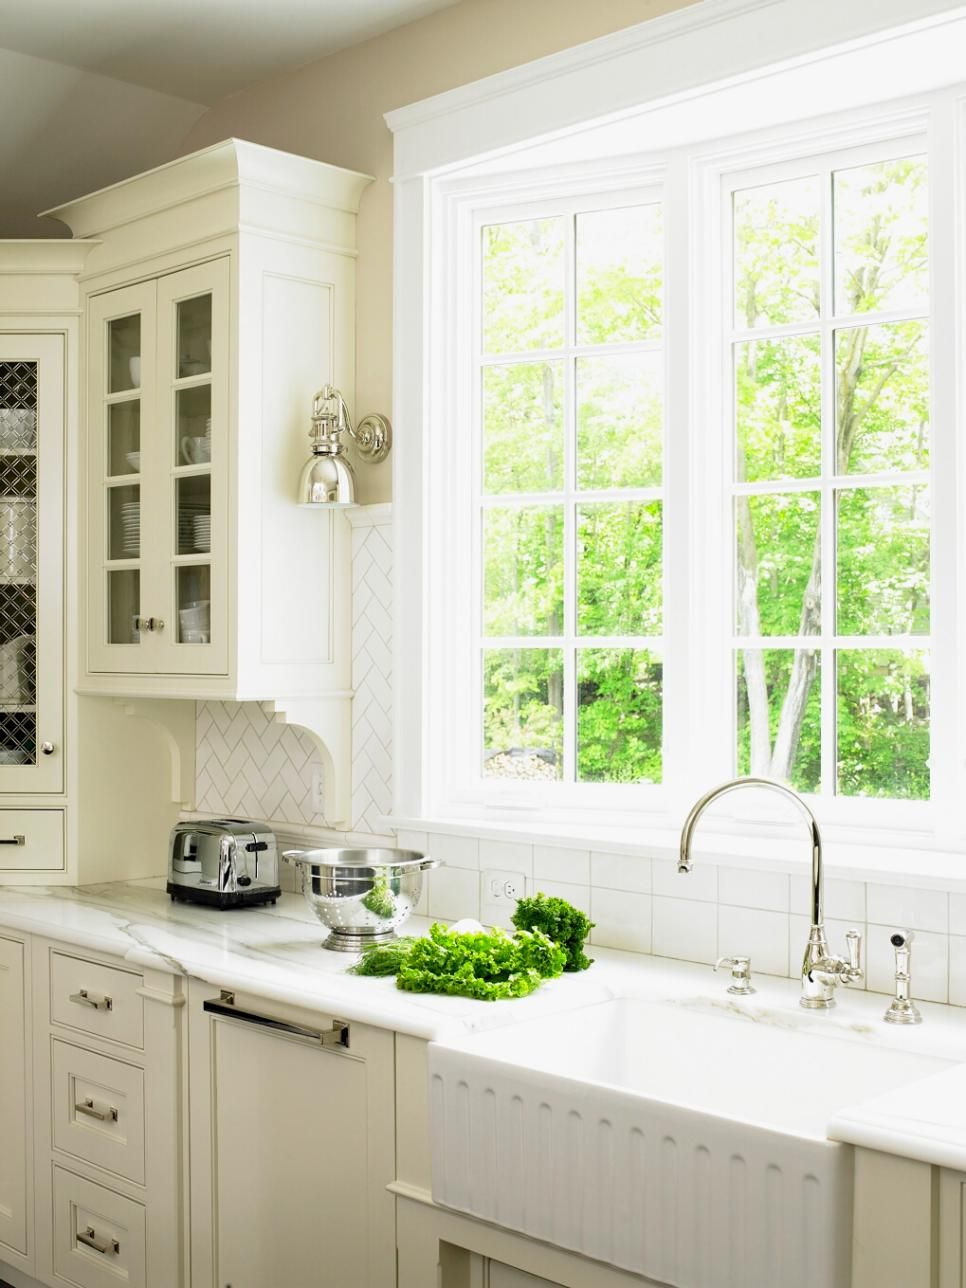 Kitchen Window Pictures: The Best Options, Styles & Ideas | Window ...